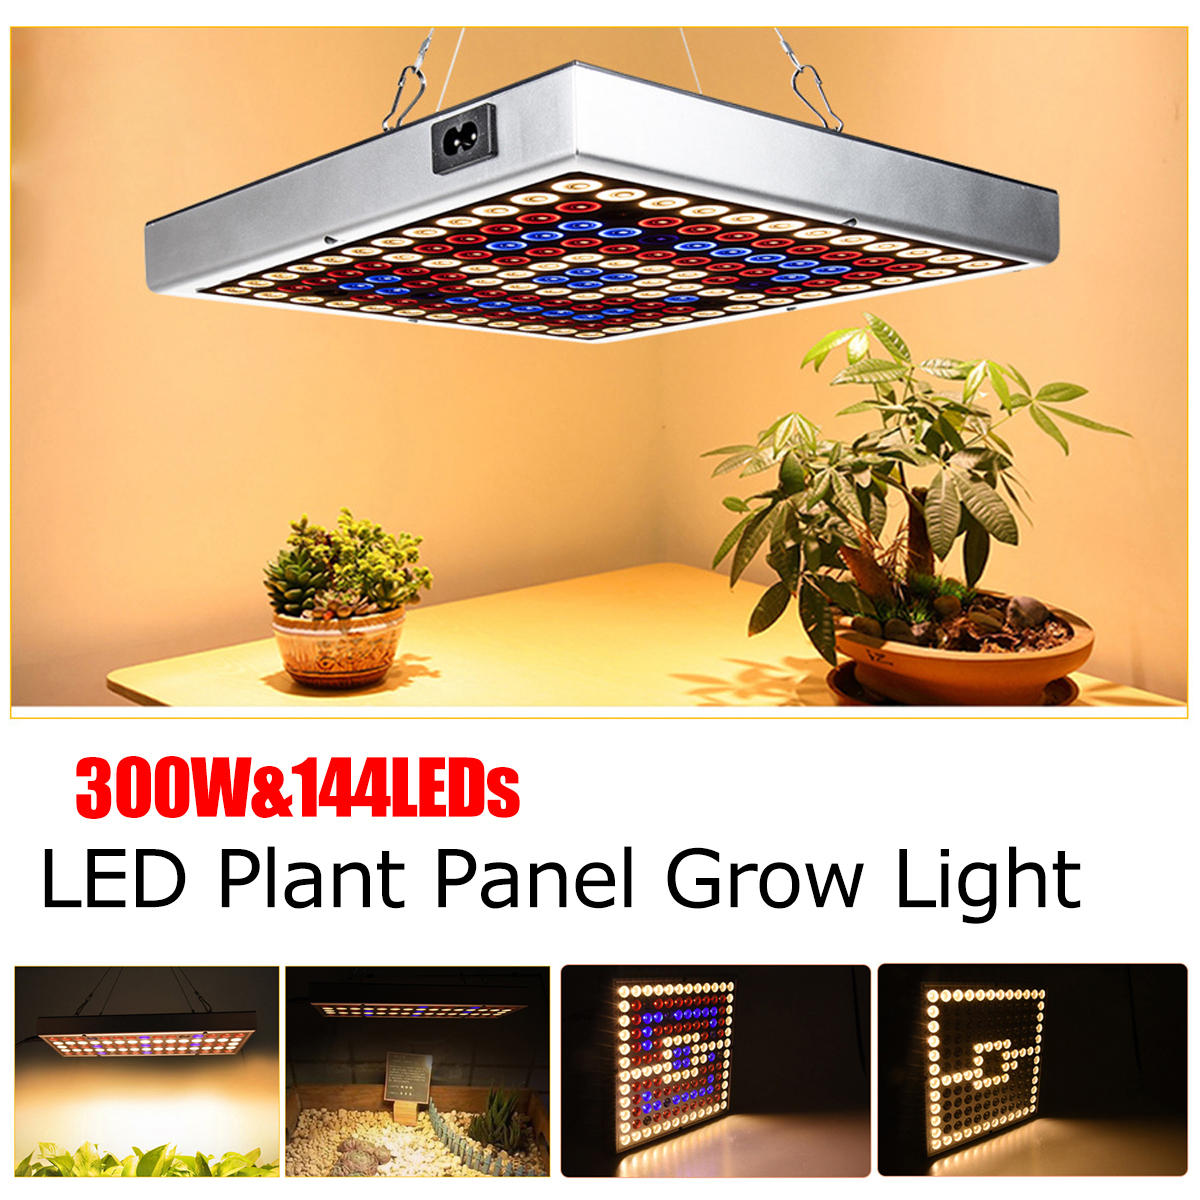 Growing Lamps 300W Full Spectrum Plant Lighting Growing Lamps LED Grow Light  Fitolampy For Plants Flowers Seedling Cultivation